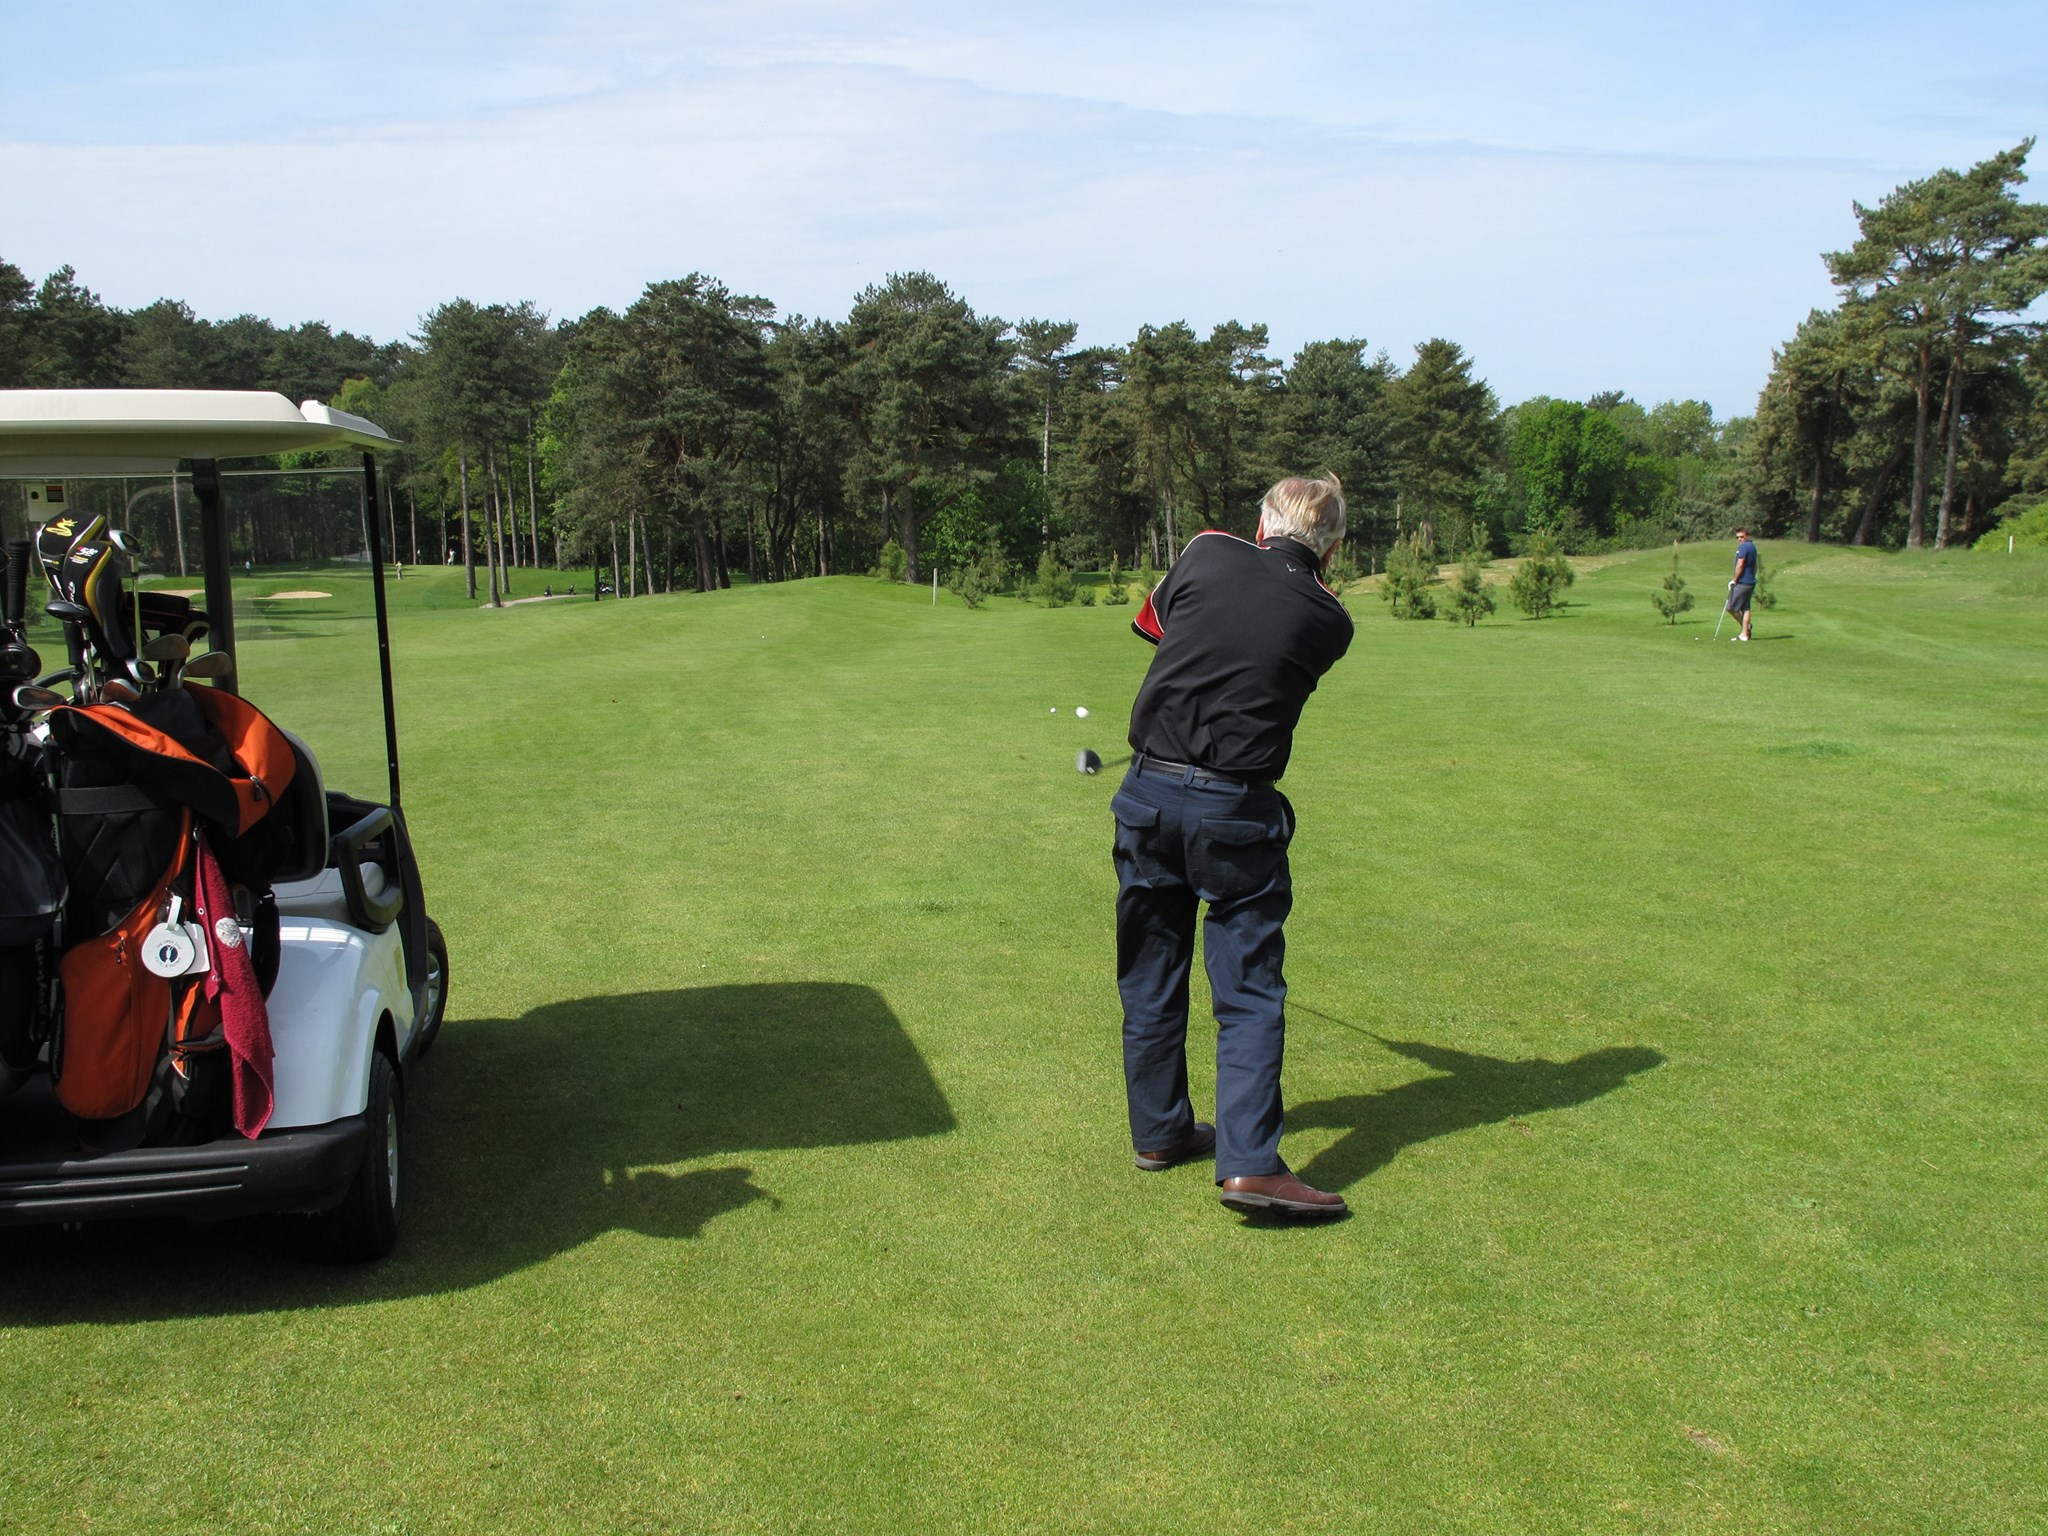 Hughie executing a perfect approach shot. France 2009.